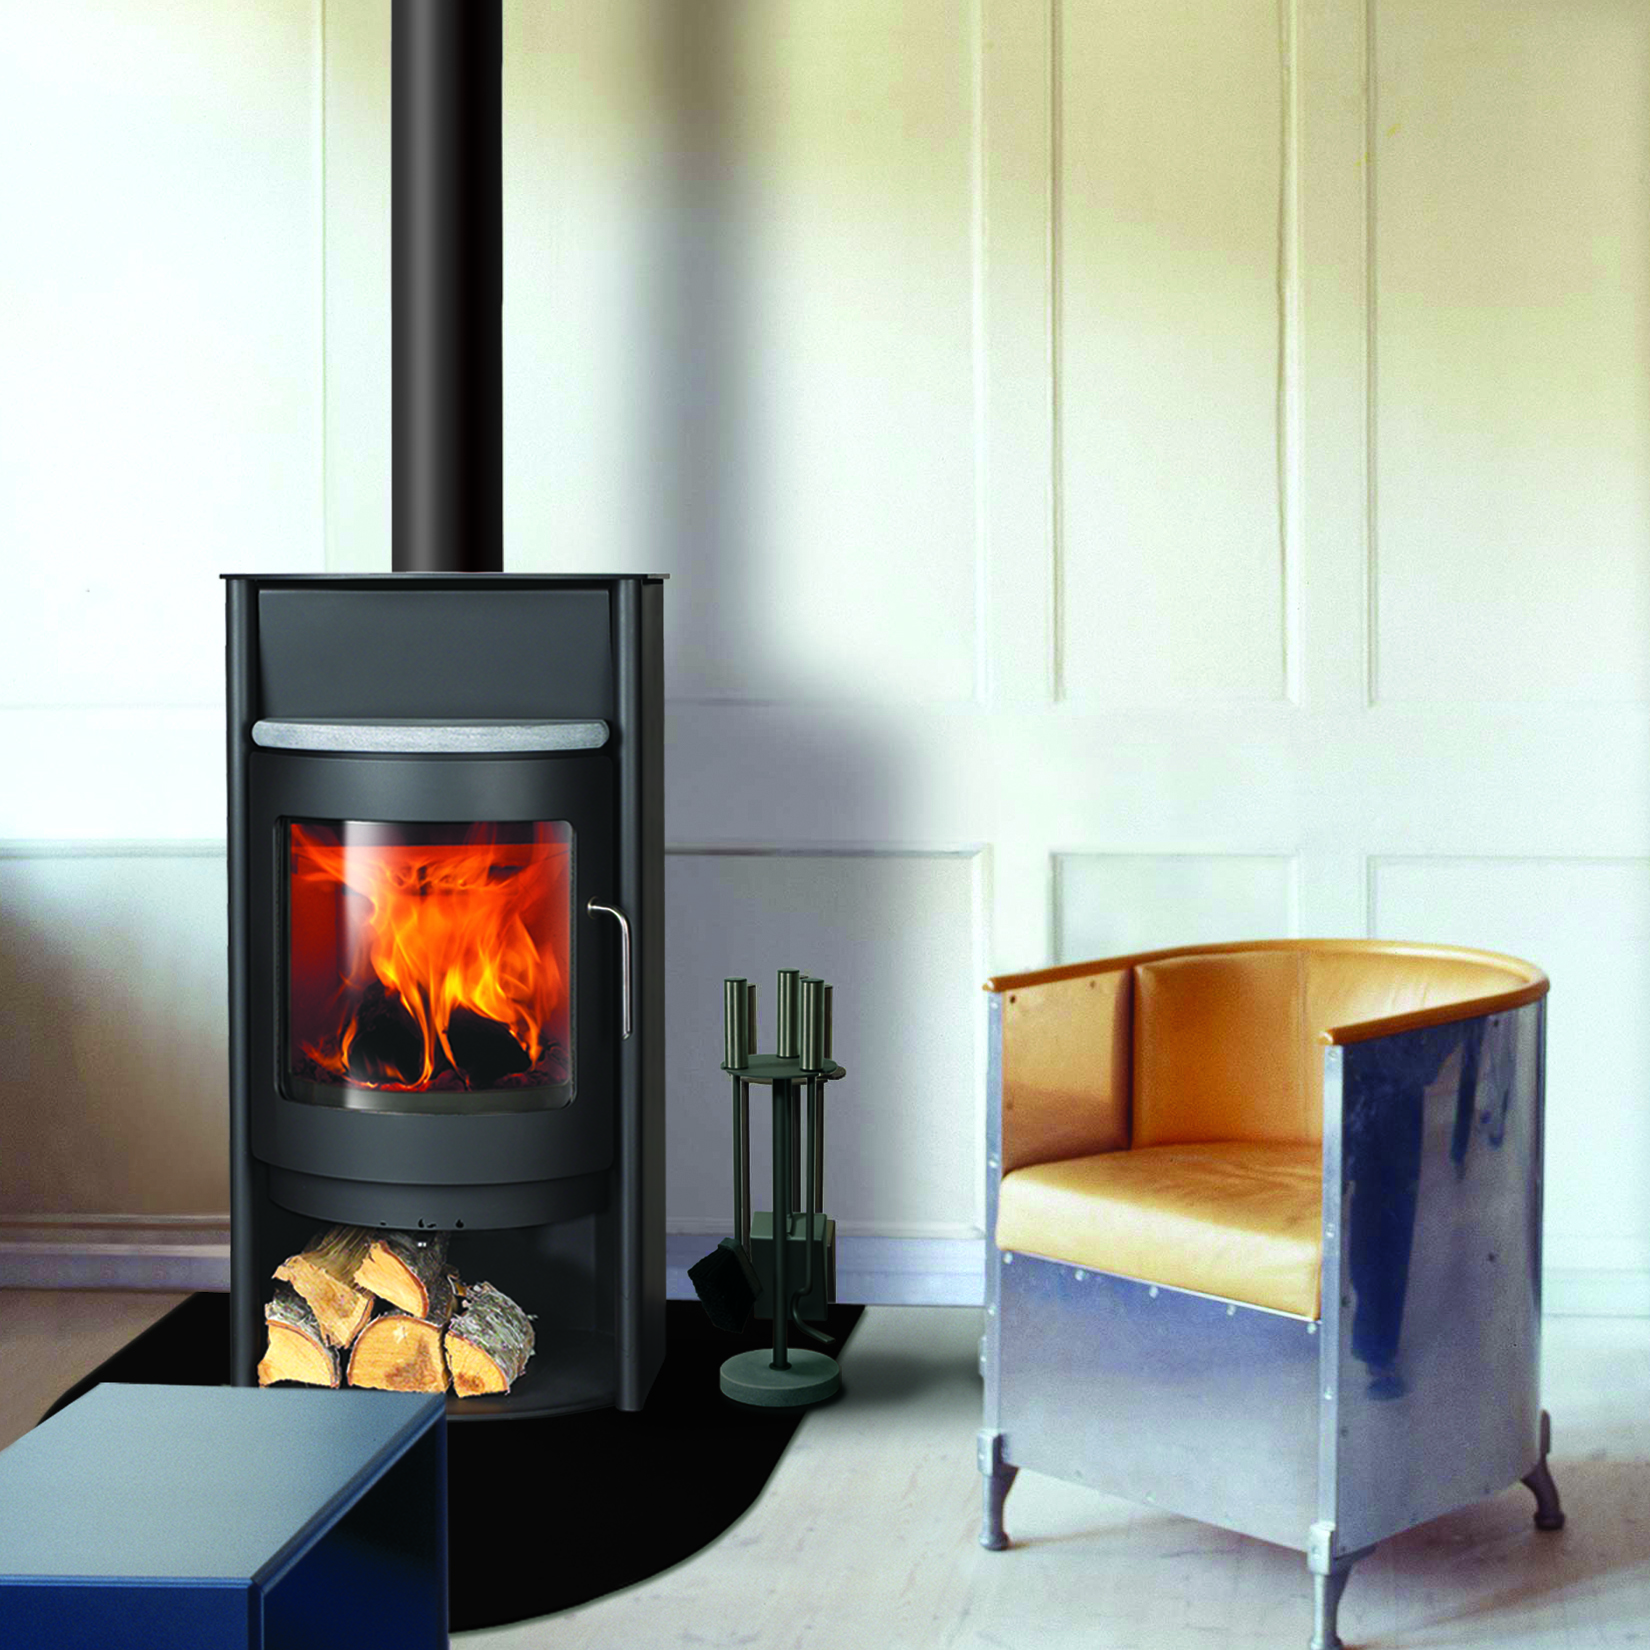 rais stoves wood stoves wood fireplaces gas stoves outdoor